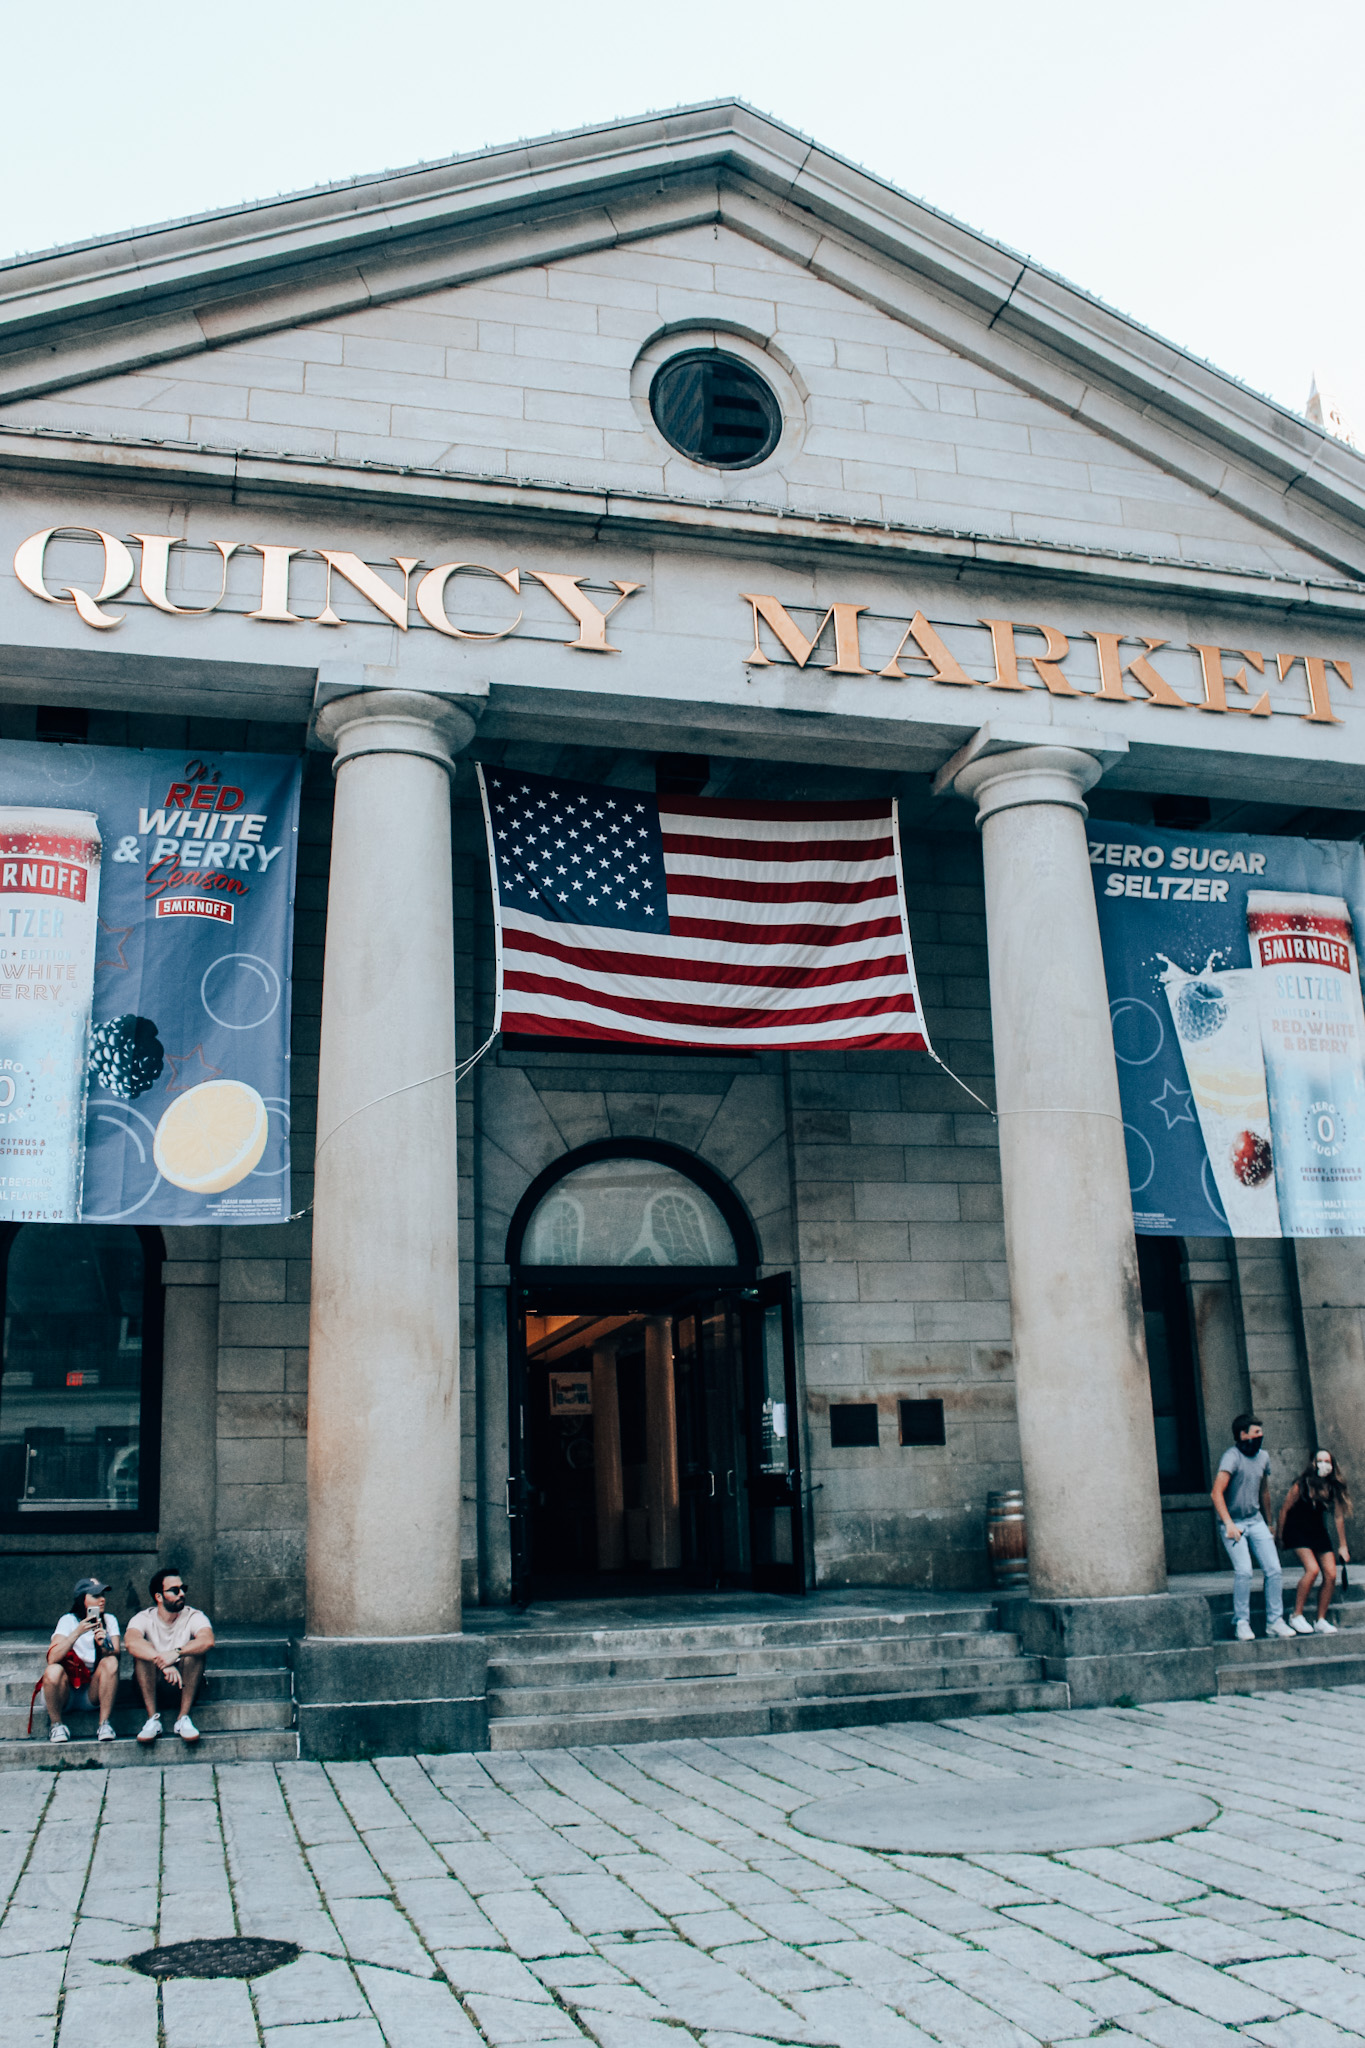 Front of Quincy Market in Faneuil Hall in Boston, MA